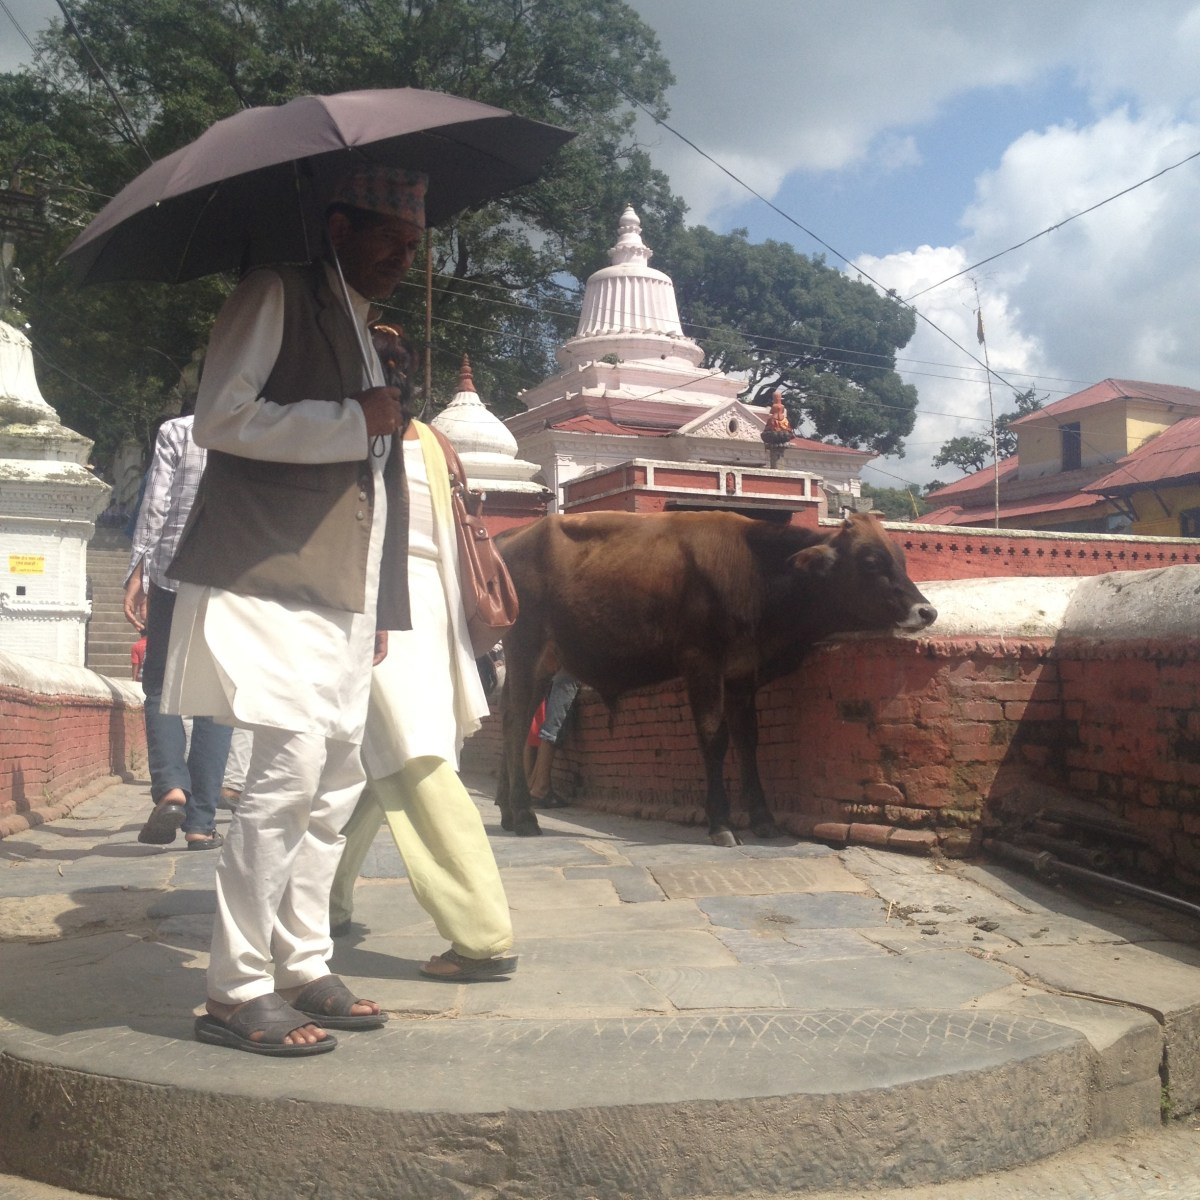 Nepal Travel: Waiting for a Taxi in Kathmandu